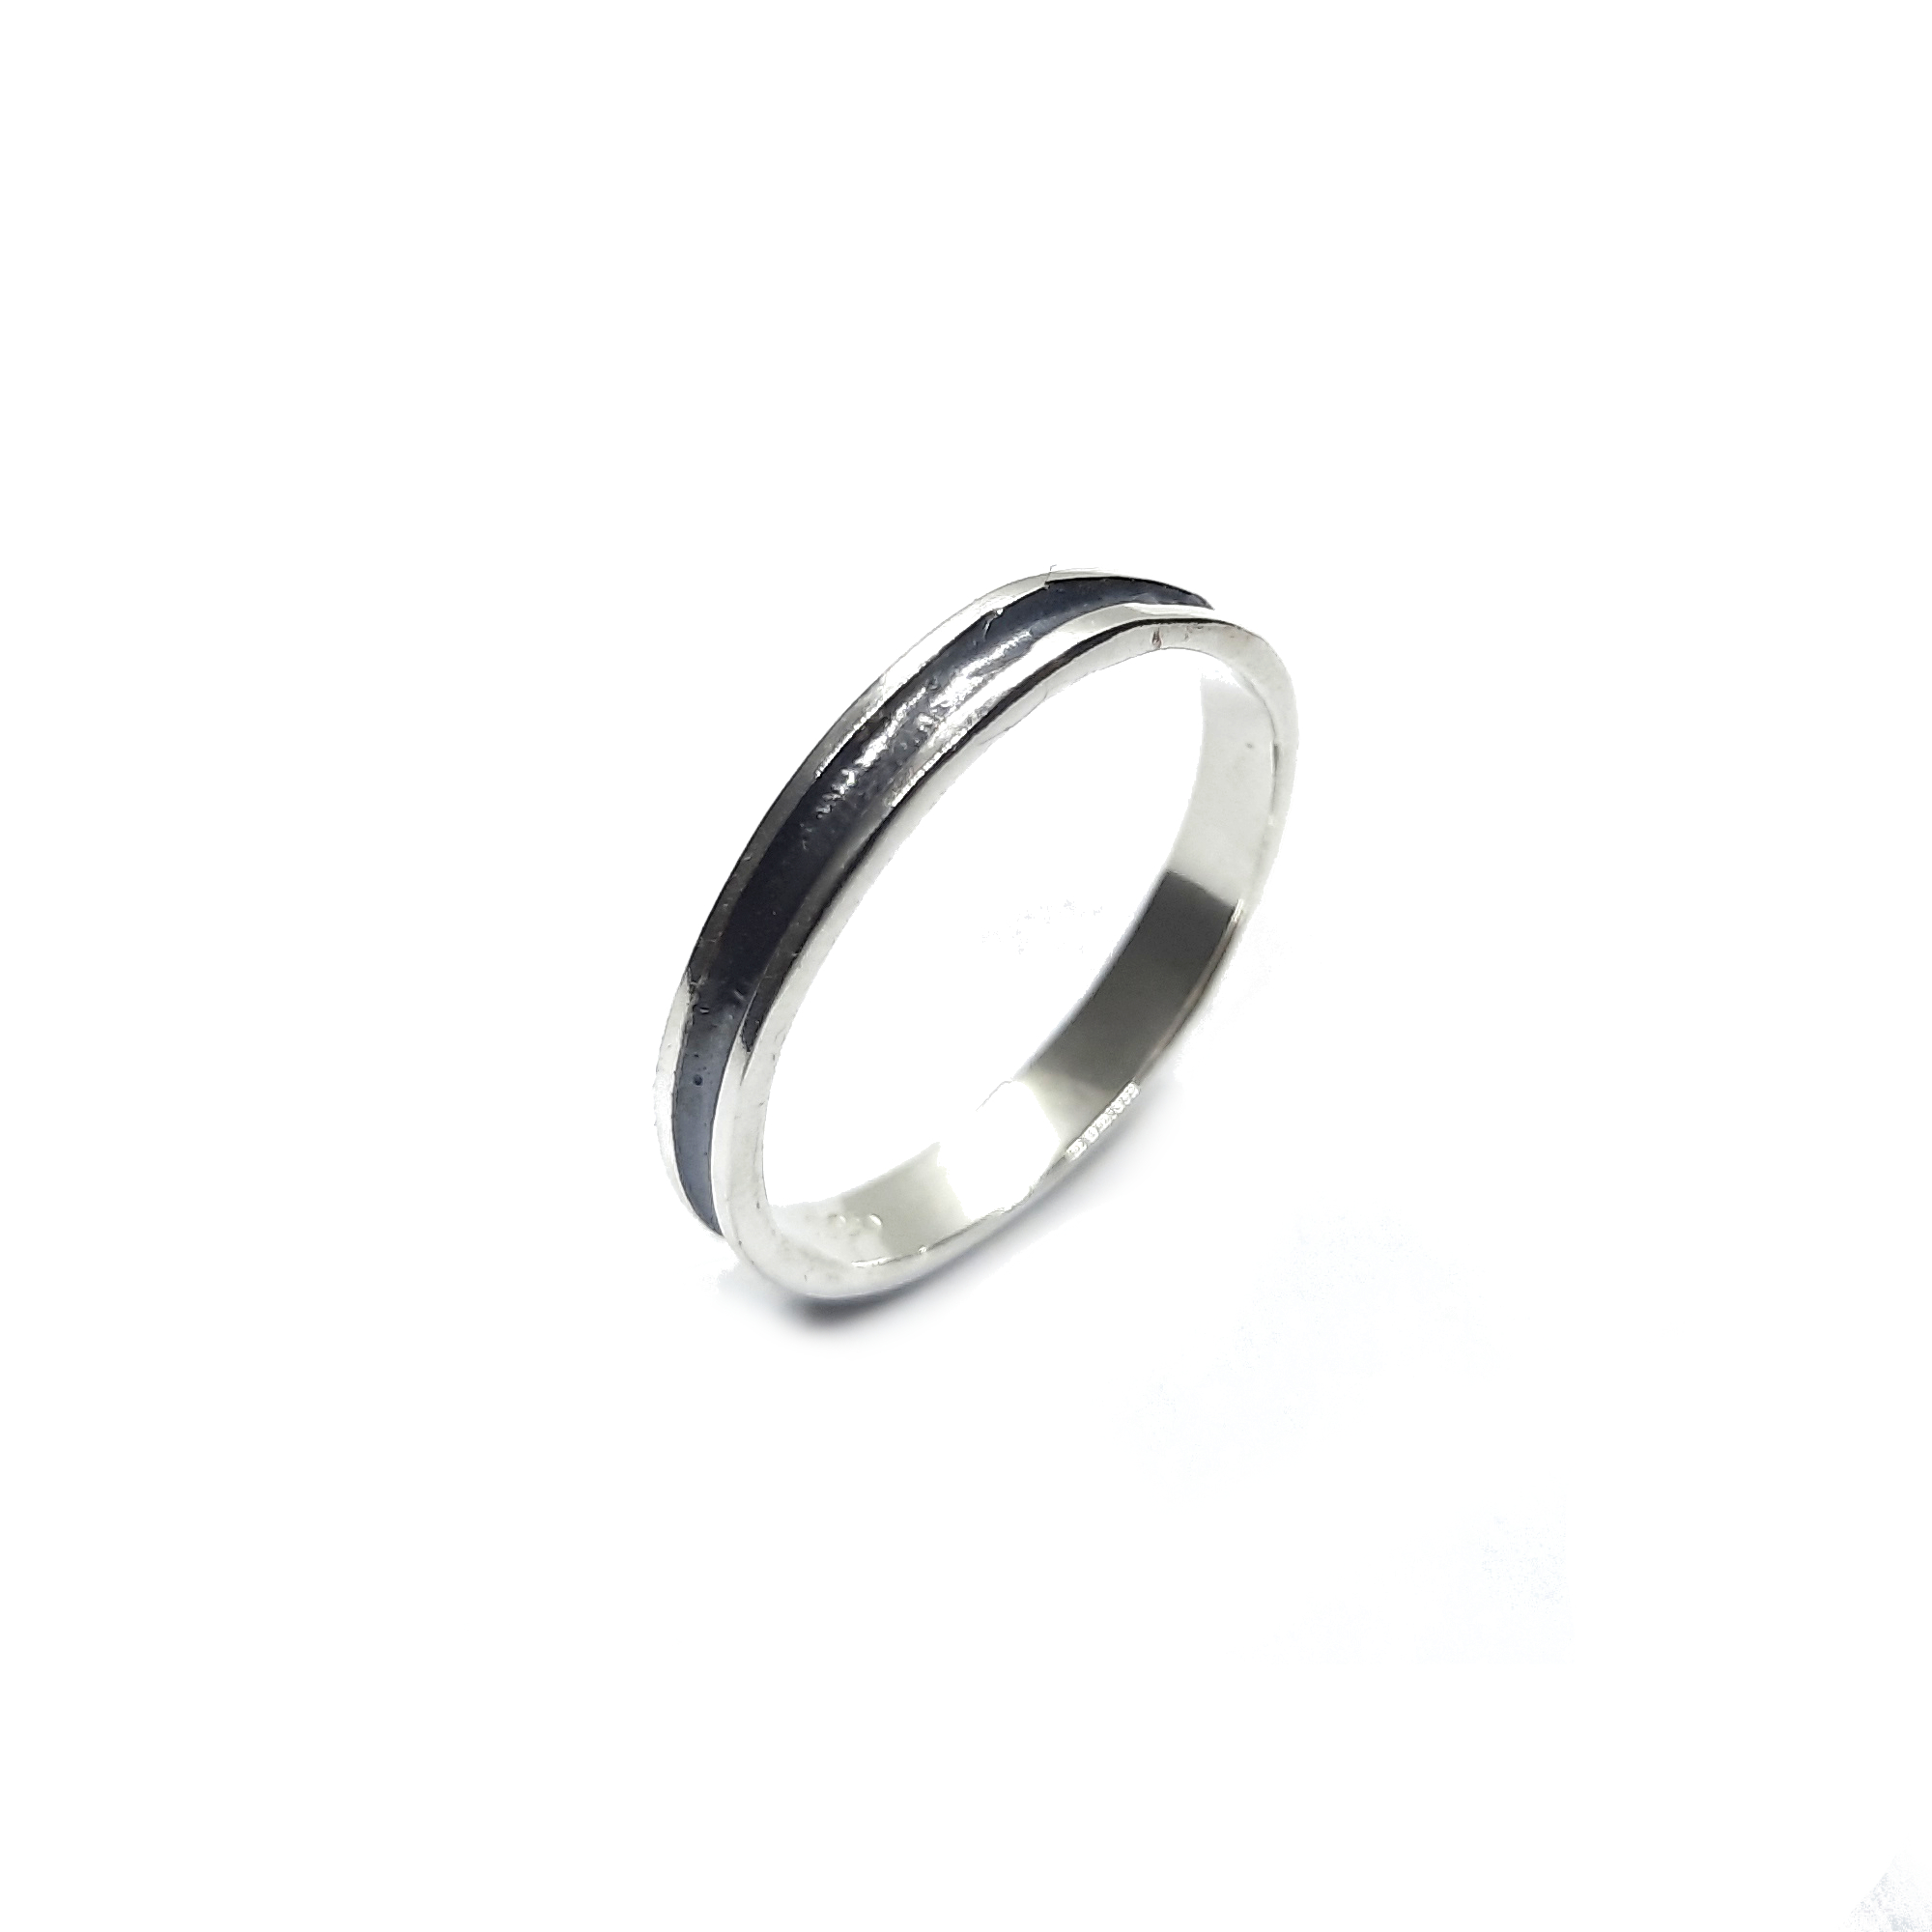 Silver ring - R002257